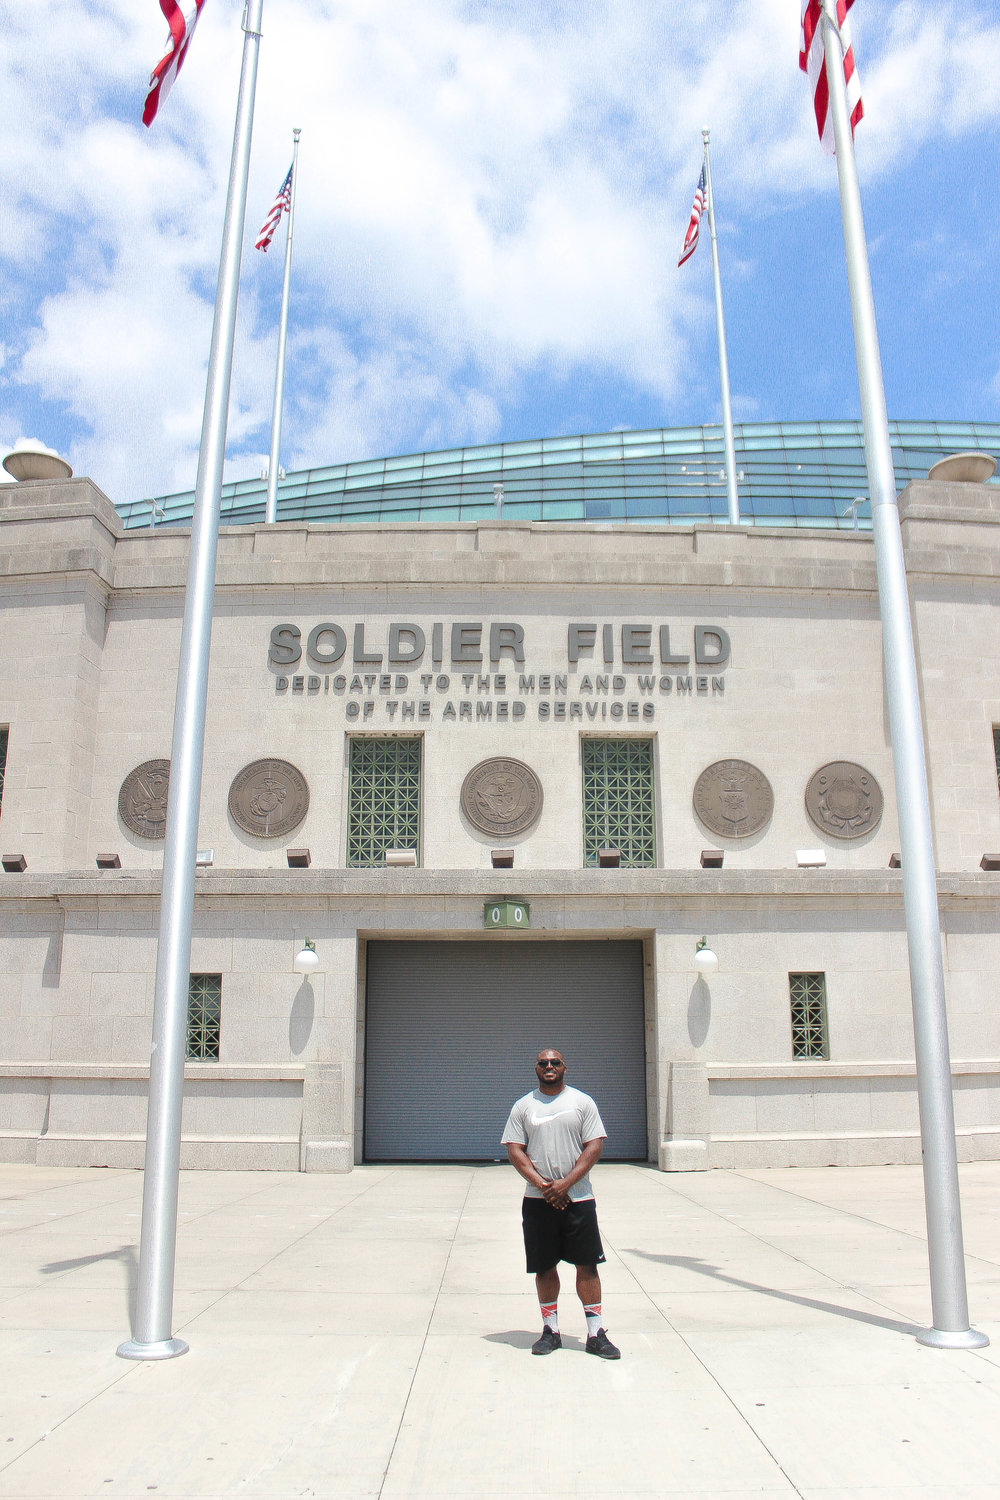 LG Soldier Field Chicago.jpg